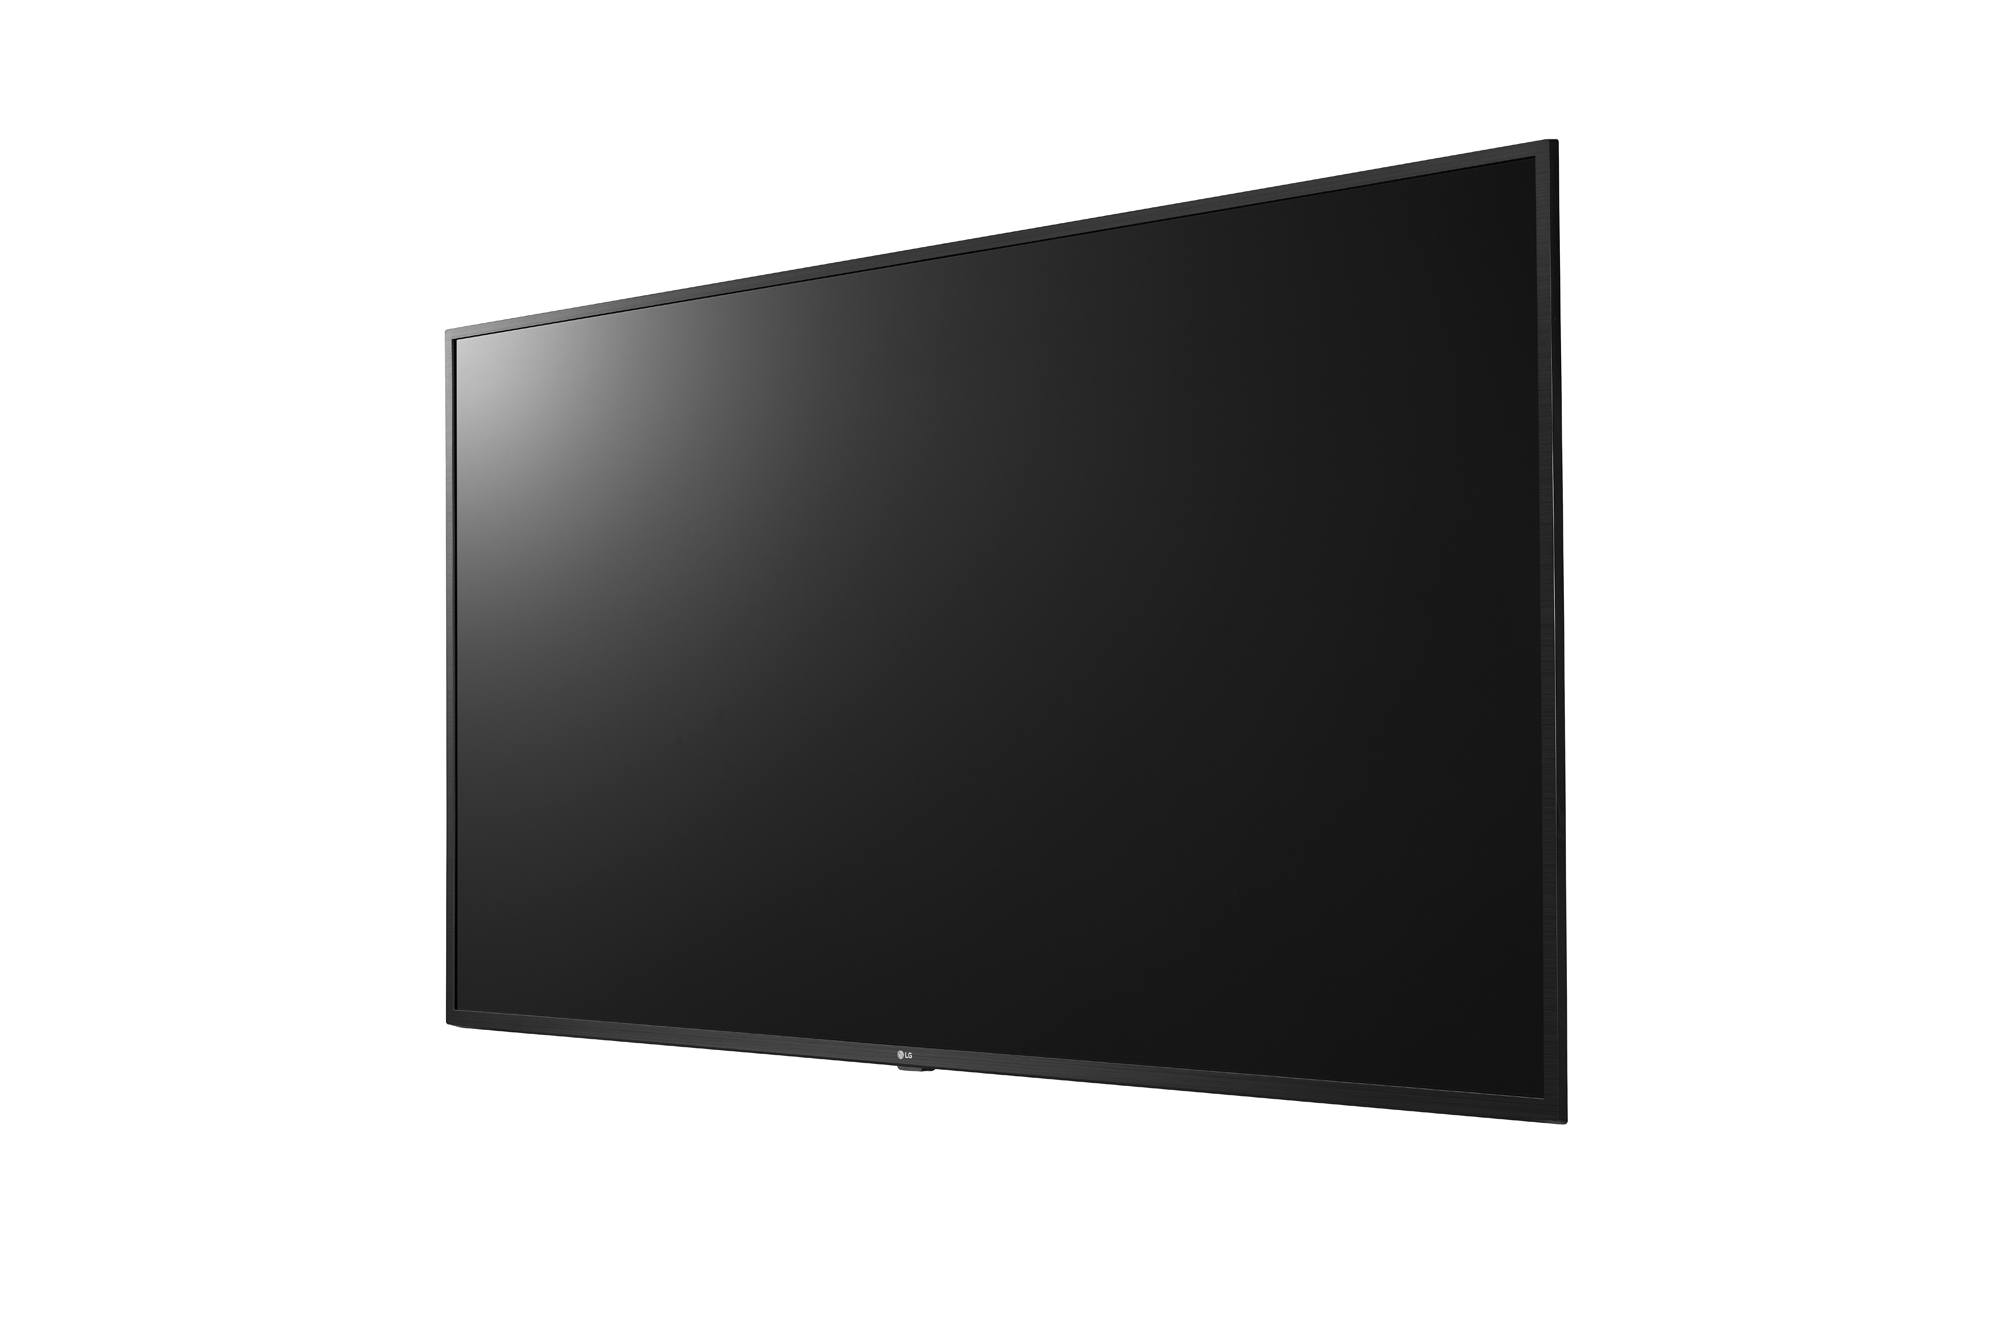 LG Smart TV Signage 55UT640S (EU) 4